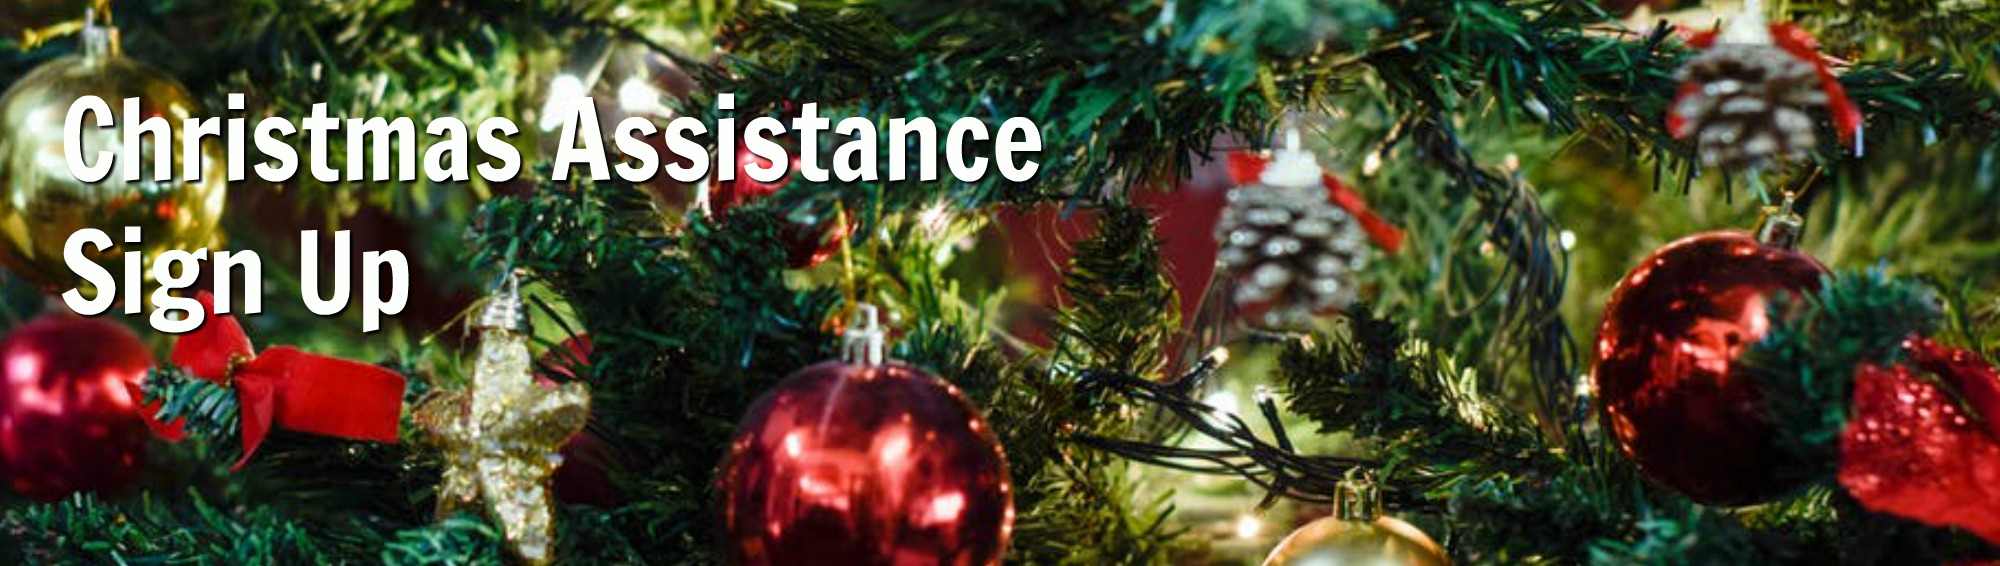 Salvation army christmas gift assistance